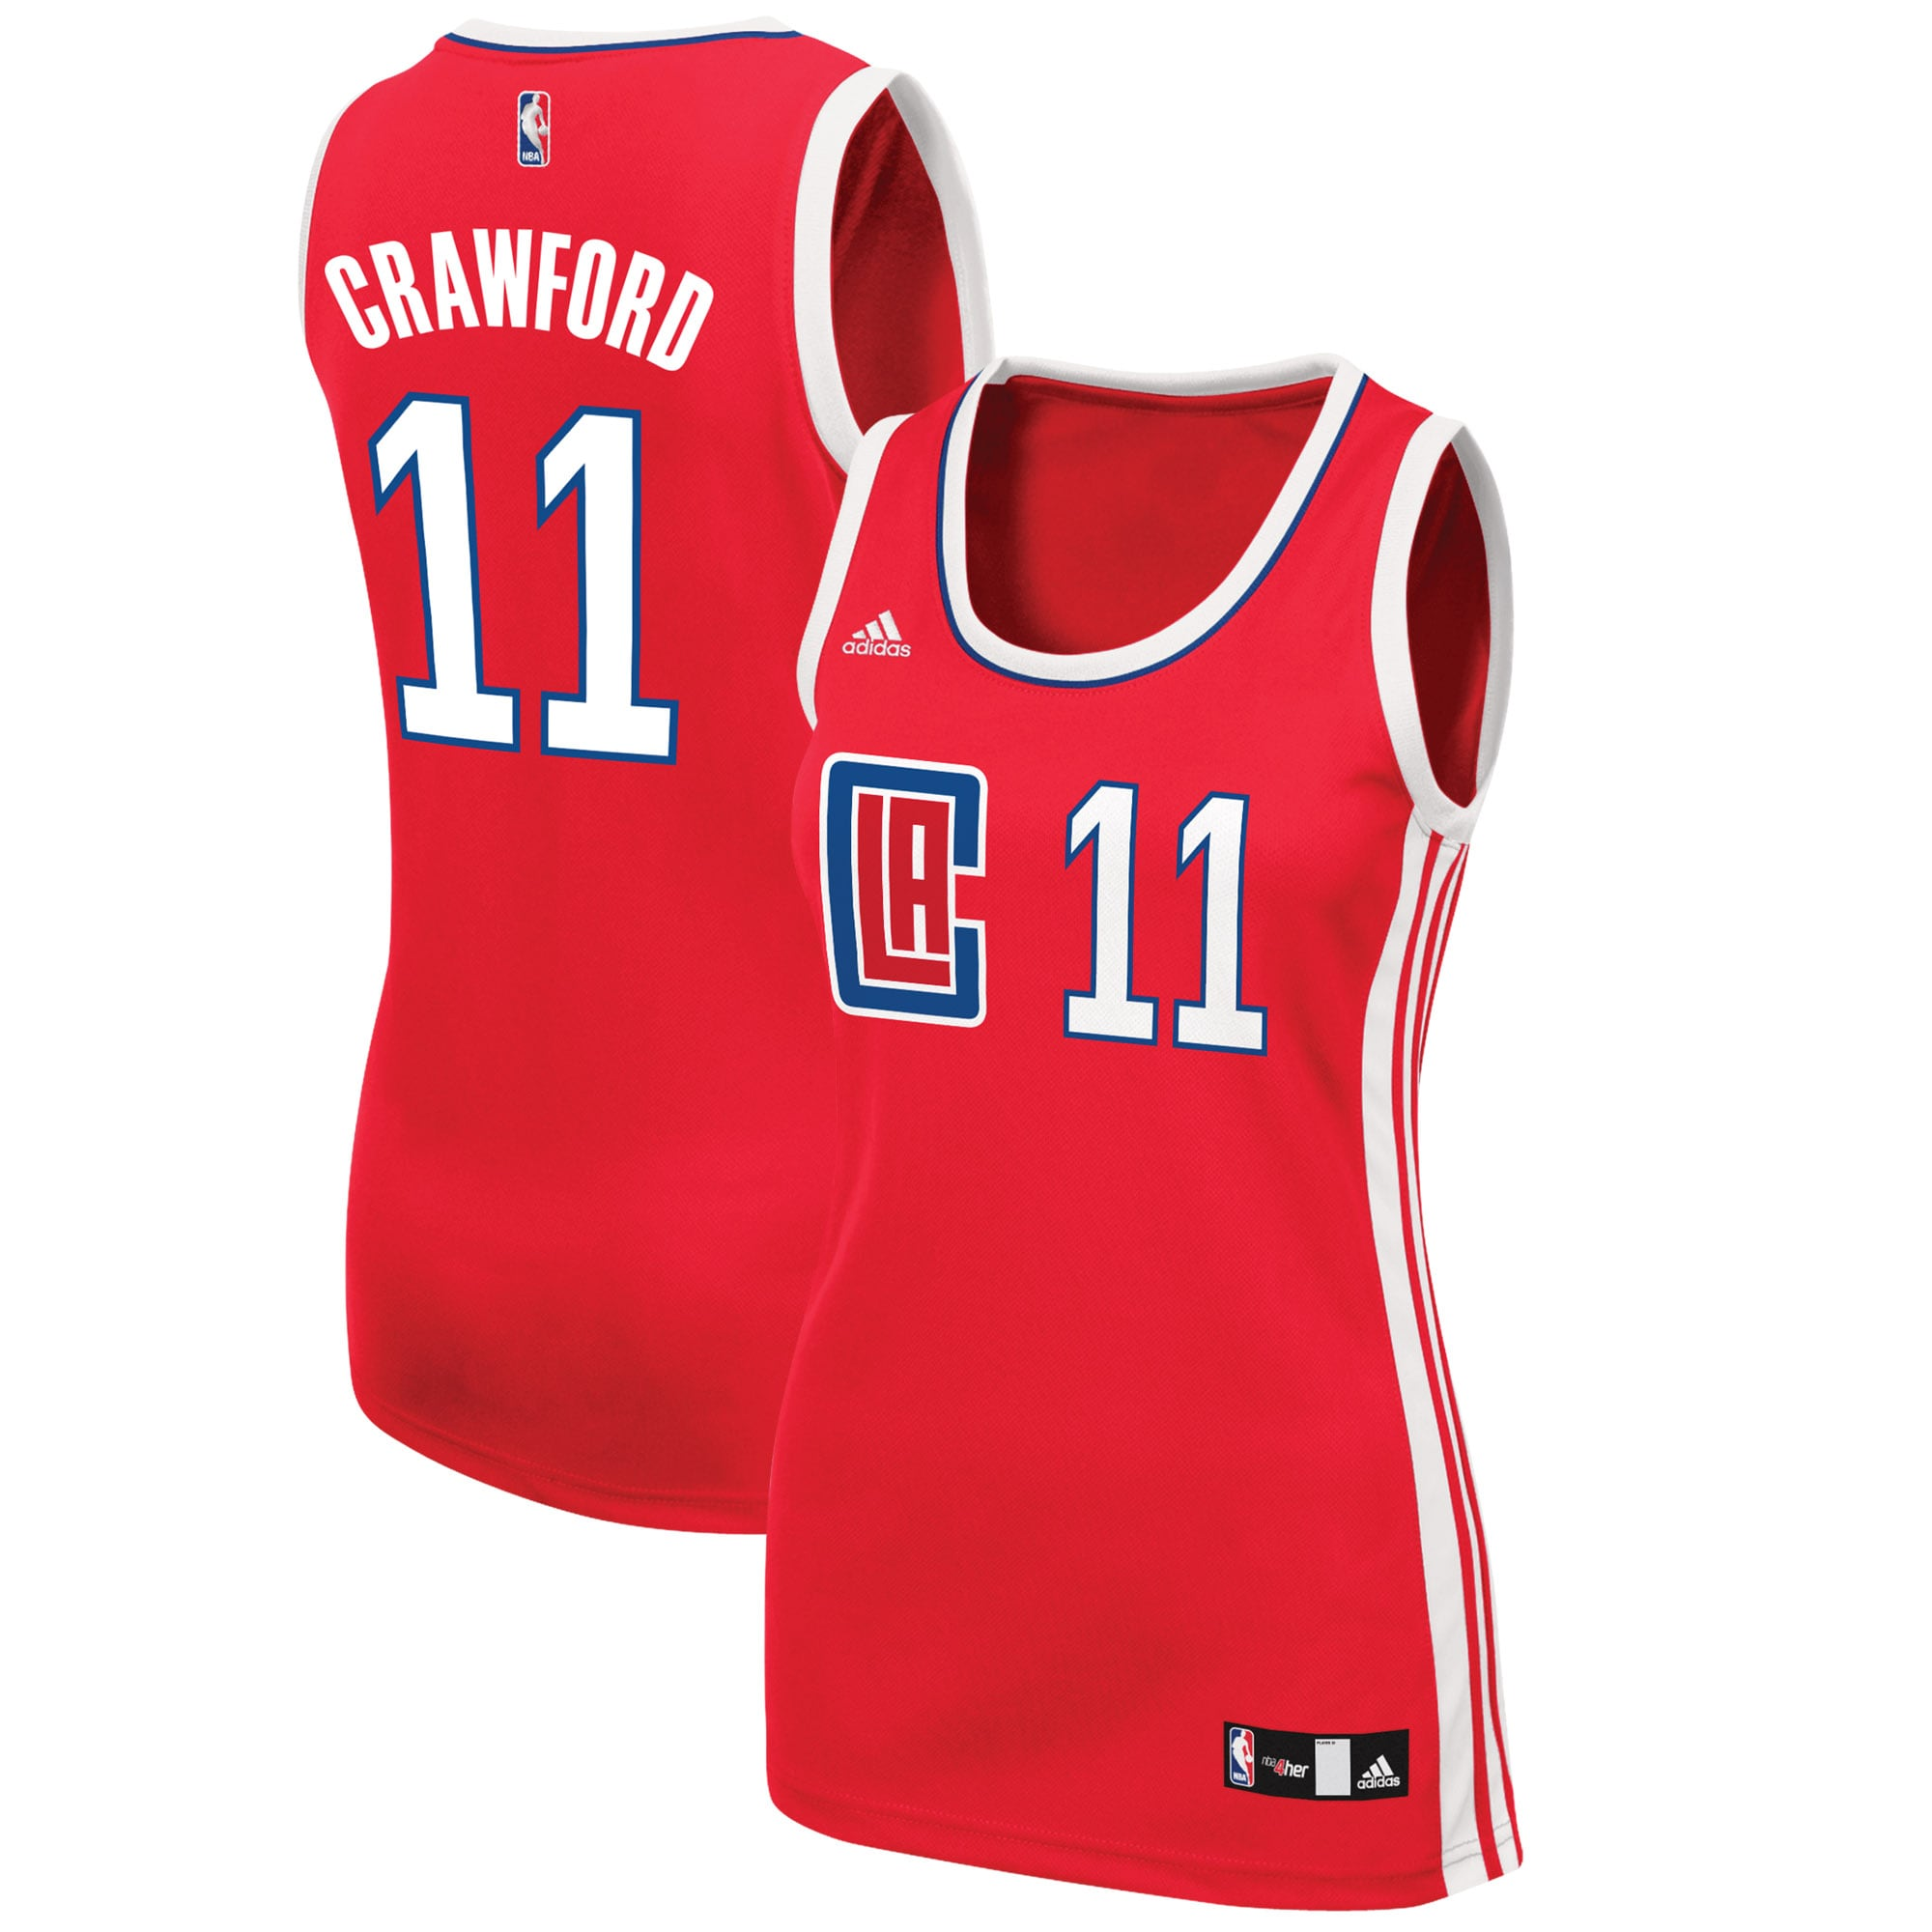 Jamal Crawford LA Clippers adidas Women's Road Replica Jersey - Red